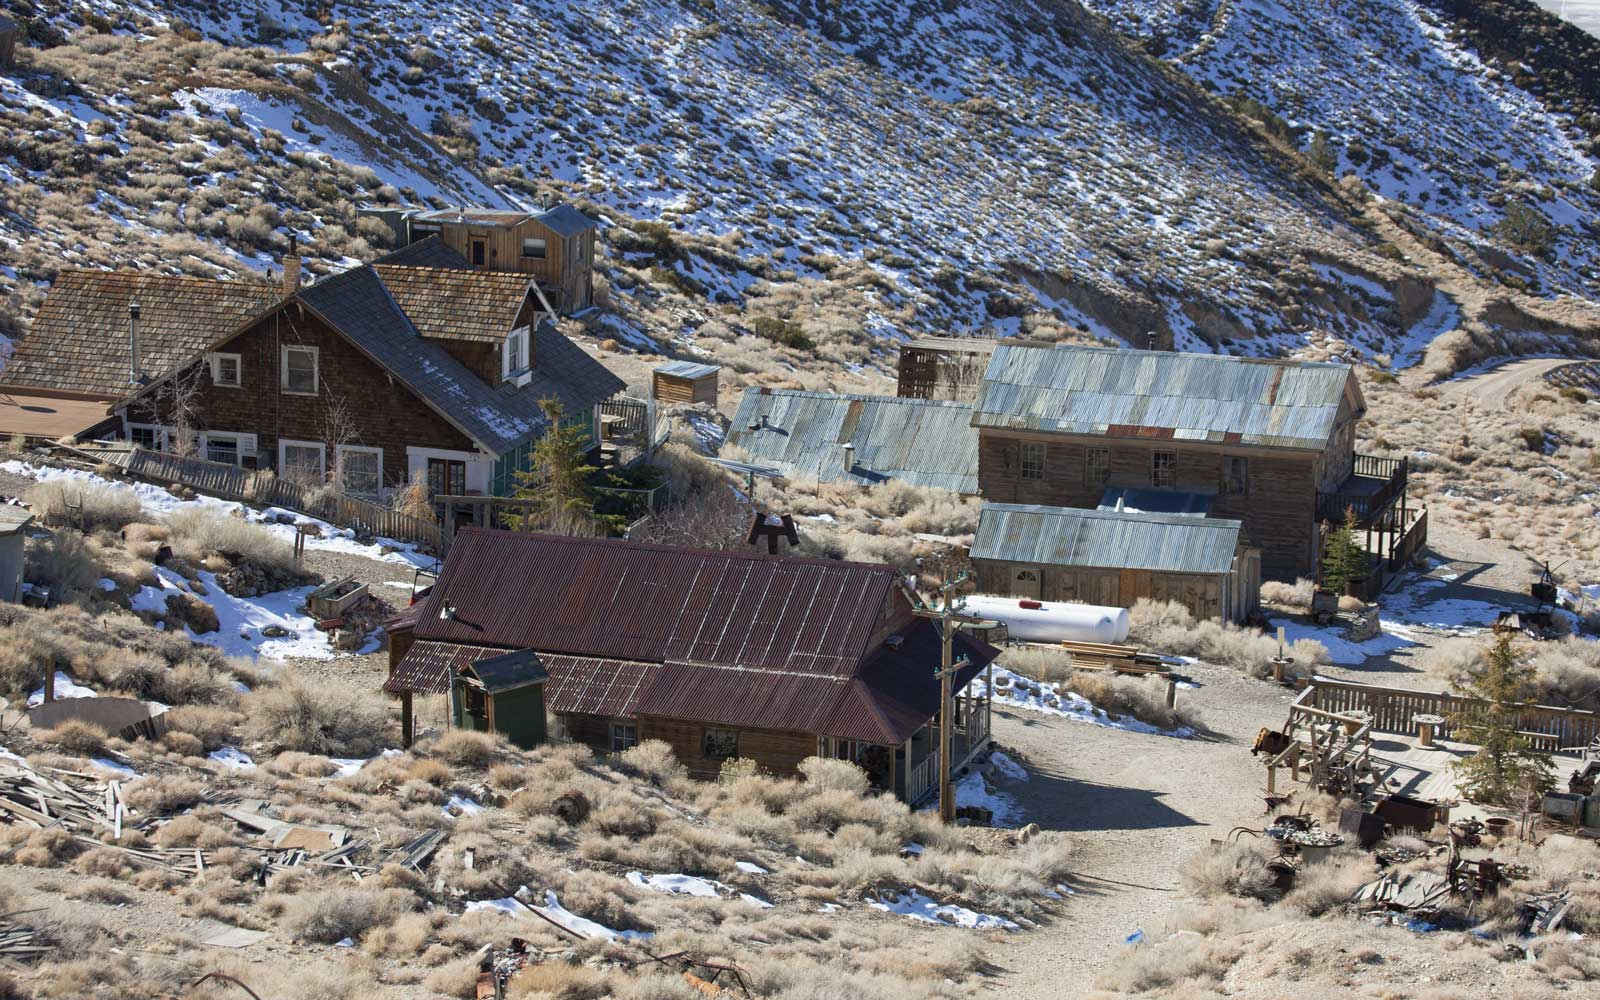 Cerro Gordo is currently a ghost mining town. It still has several buildings including the general store and the American Hotel.